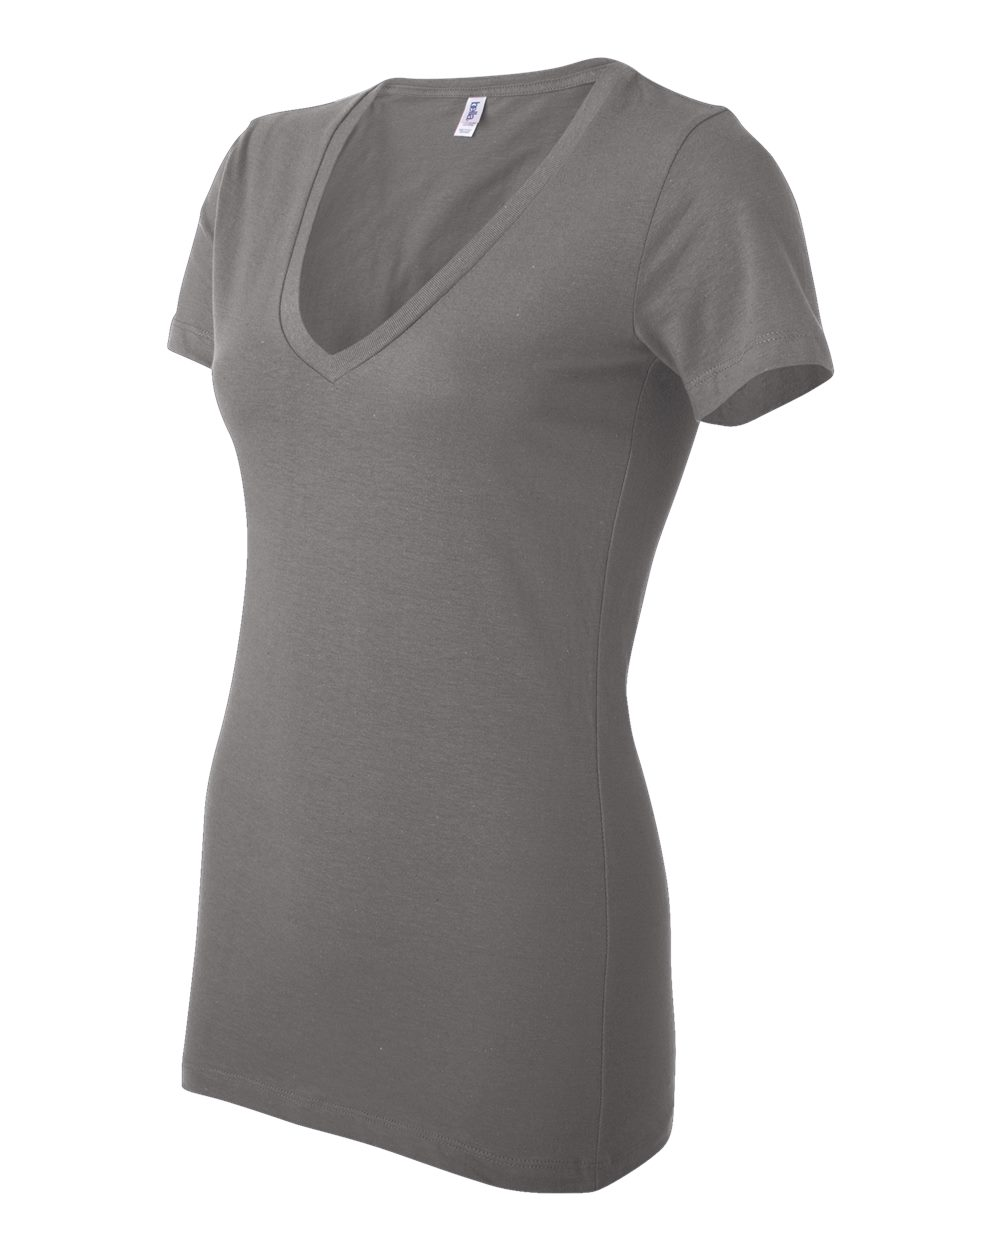 Bella-Canvas-Women-039-s-Jersey-Short-Sleeve-Deep-V-Neck-T-Shirt-B6035-S-2XL thumbnail 78